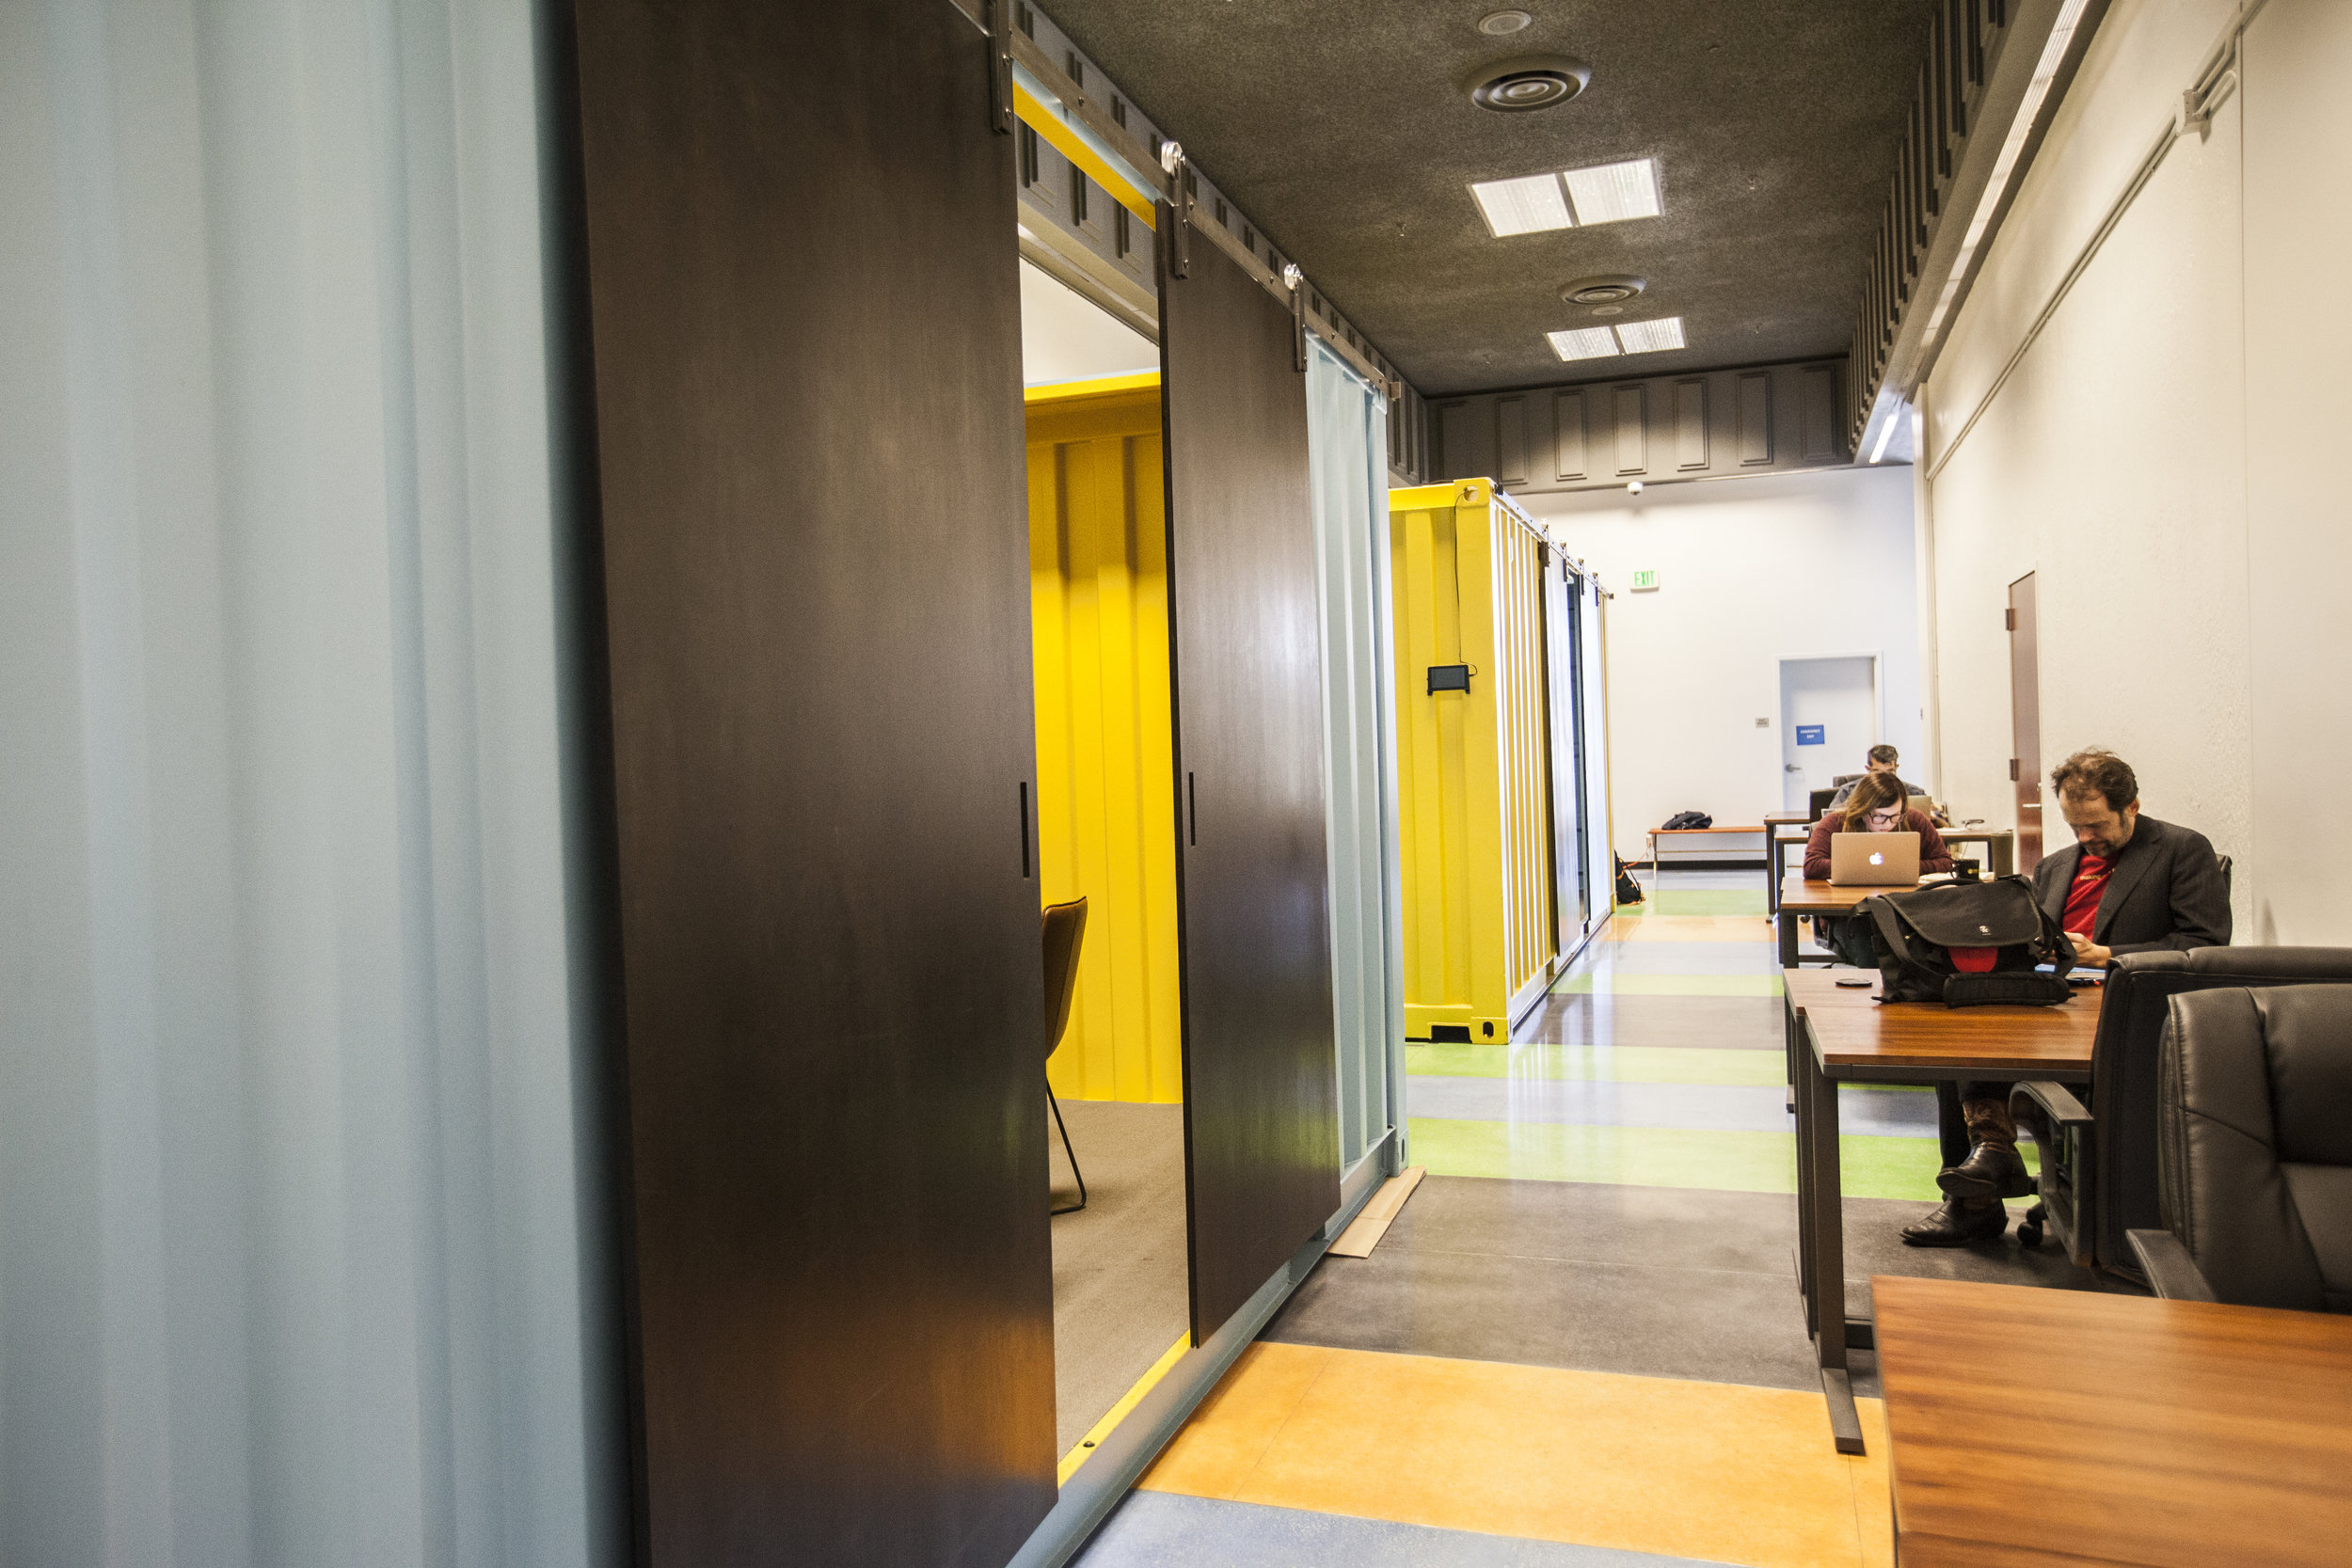 Brightly colored shipping container conference rooms with sliding doors now fill the large hallway.